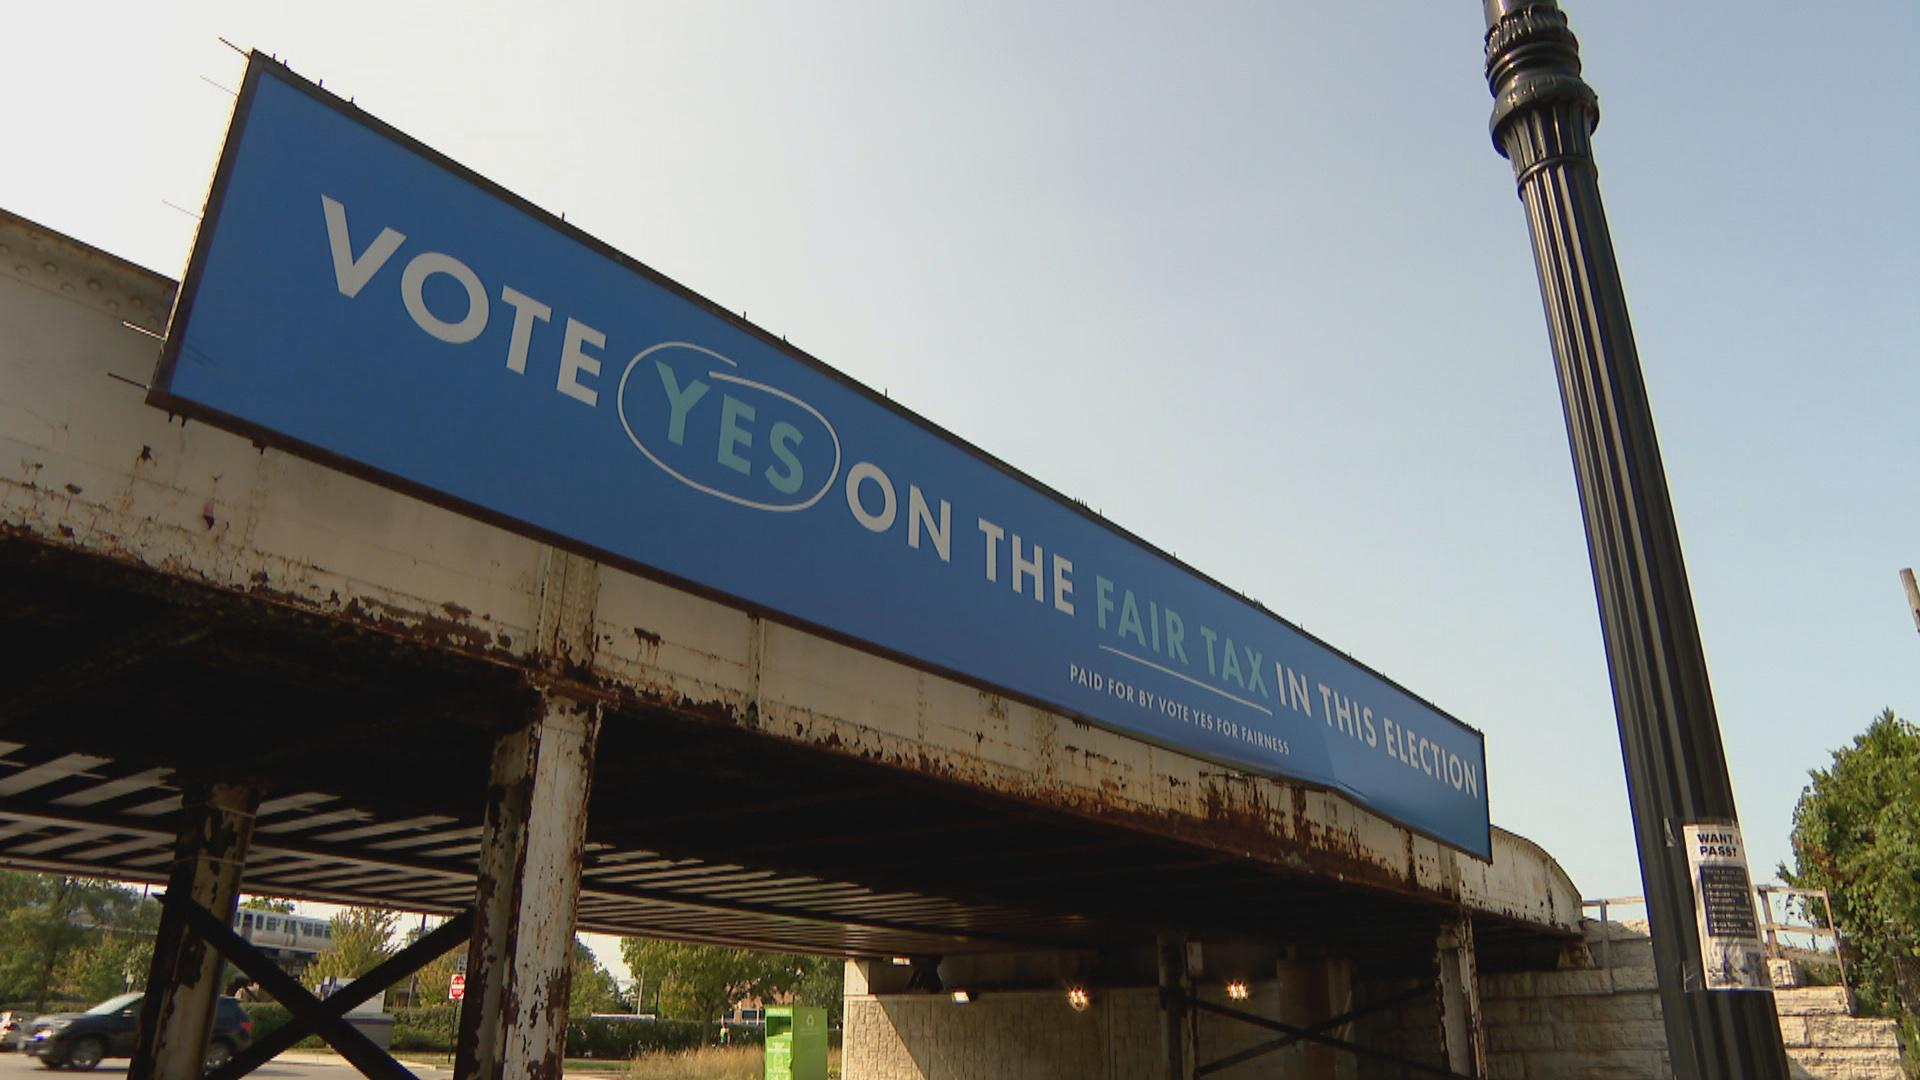 A billboard in Chicago promotes voting in favor of the so-called fair tax in the November election. (WTTW News)